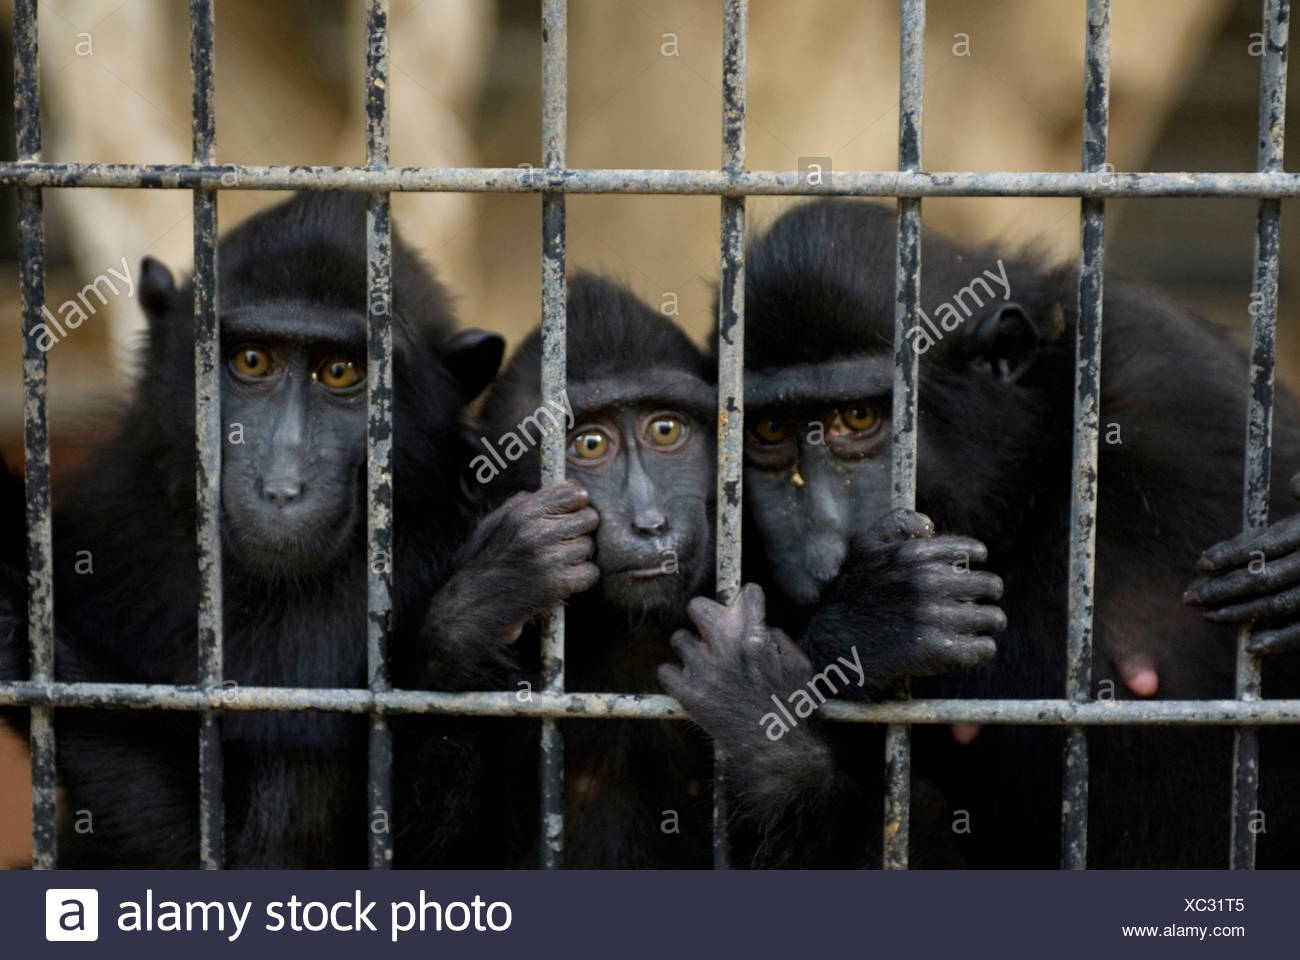 Celebes macaques (Macaca nigra) sadly gaze out of their cage. - Stock Image